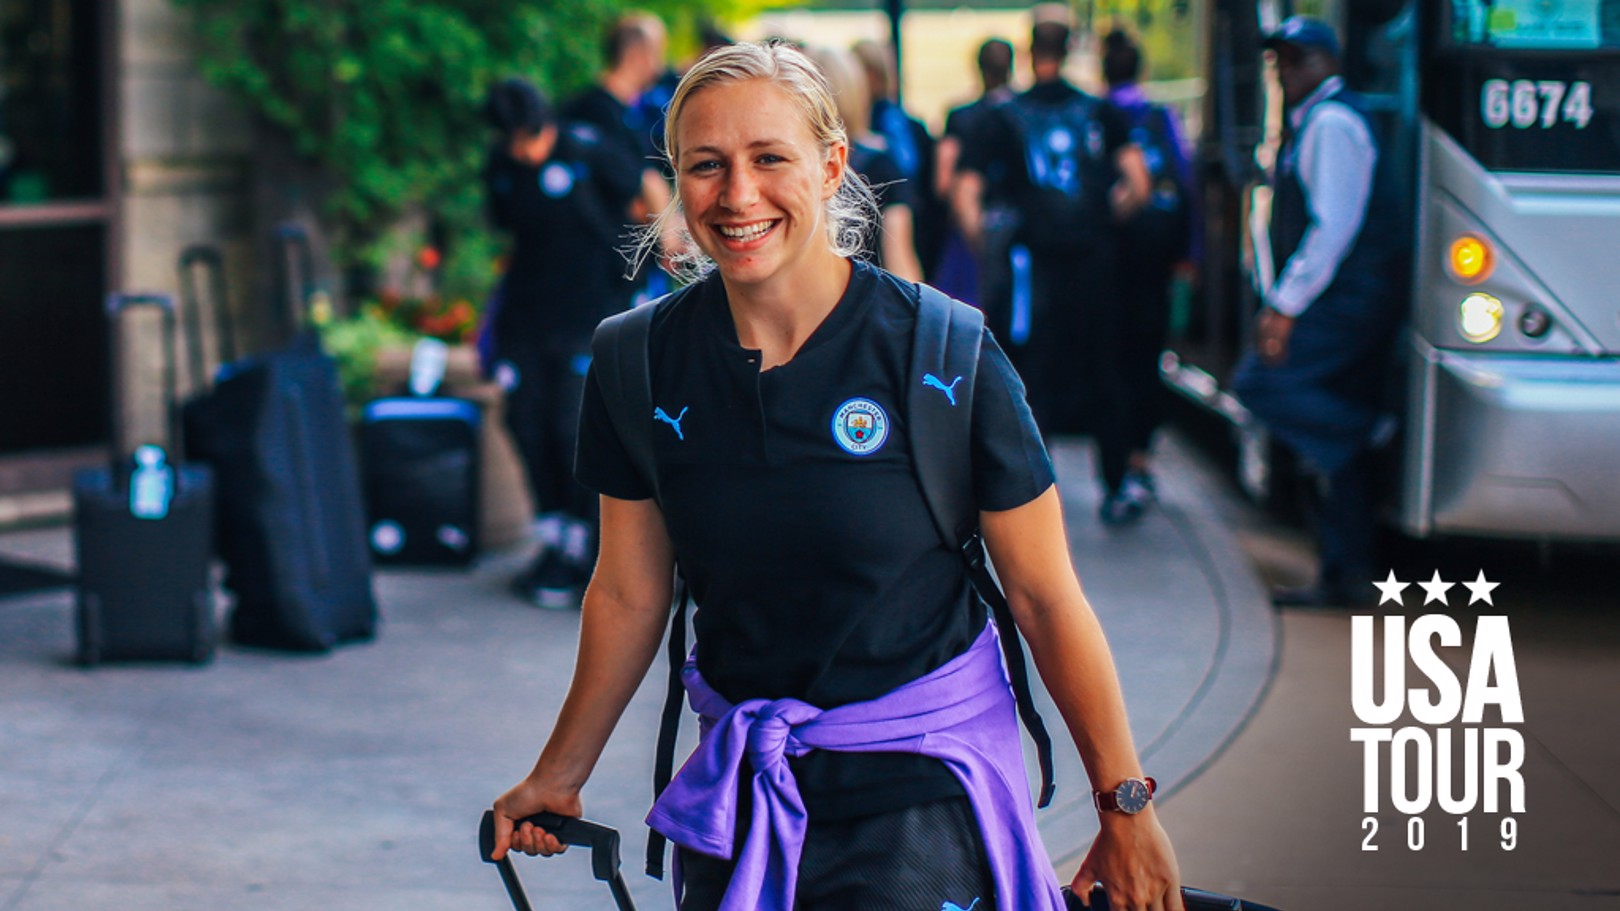 BUZZING BREMER: A buoyant Pauline Bremer, having put her injury woes behind her